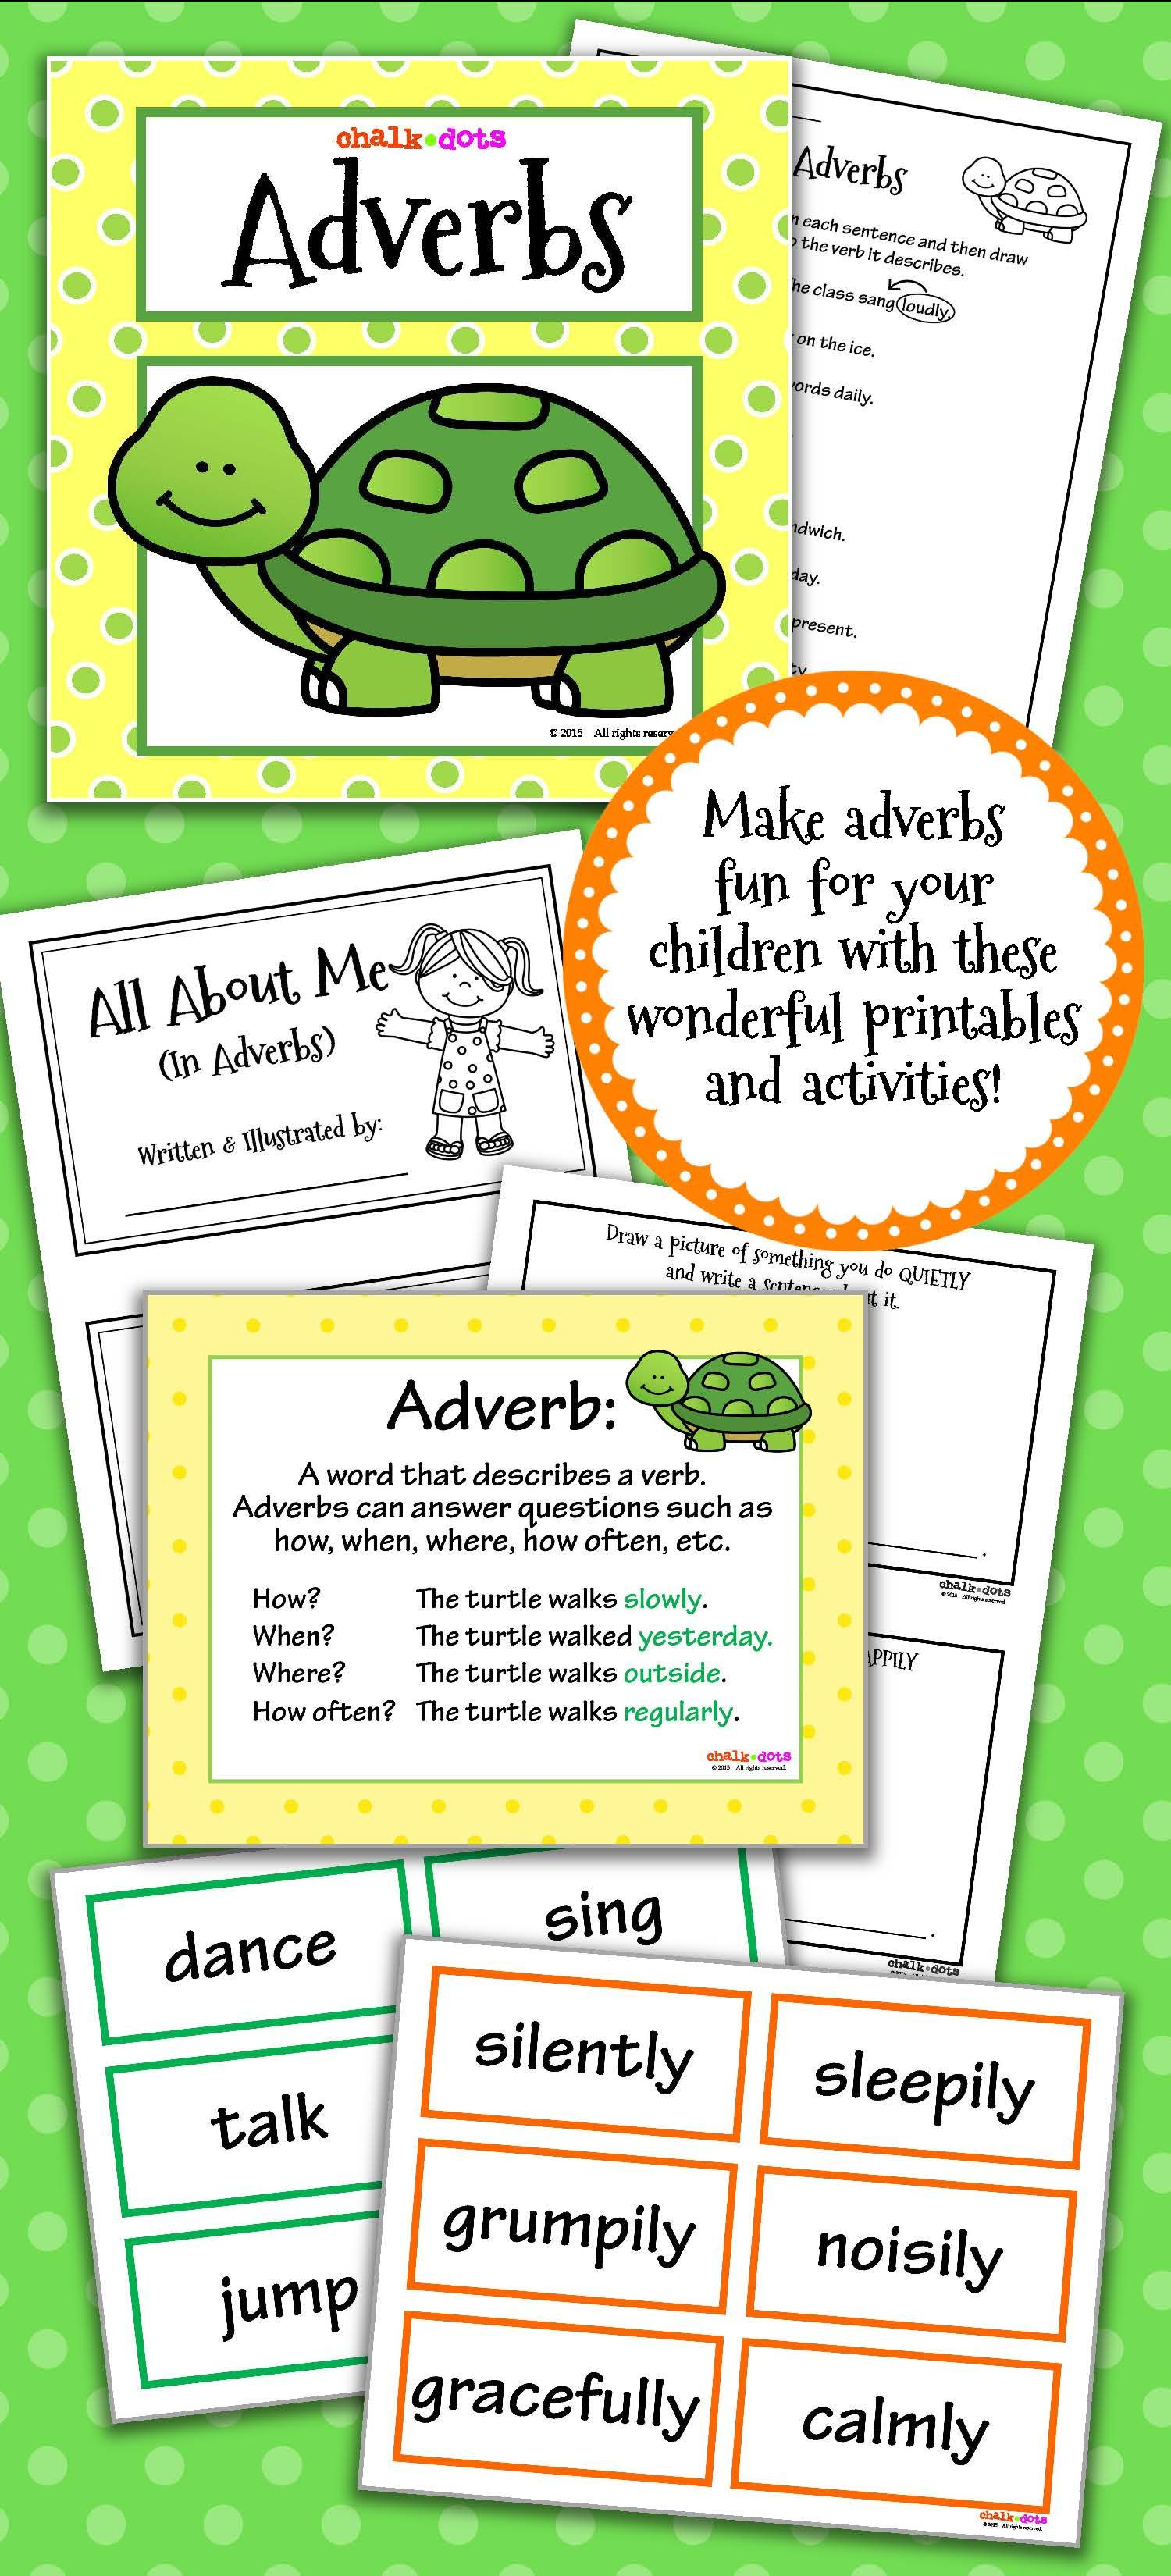 Adverbs Teaching Ideas